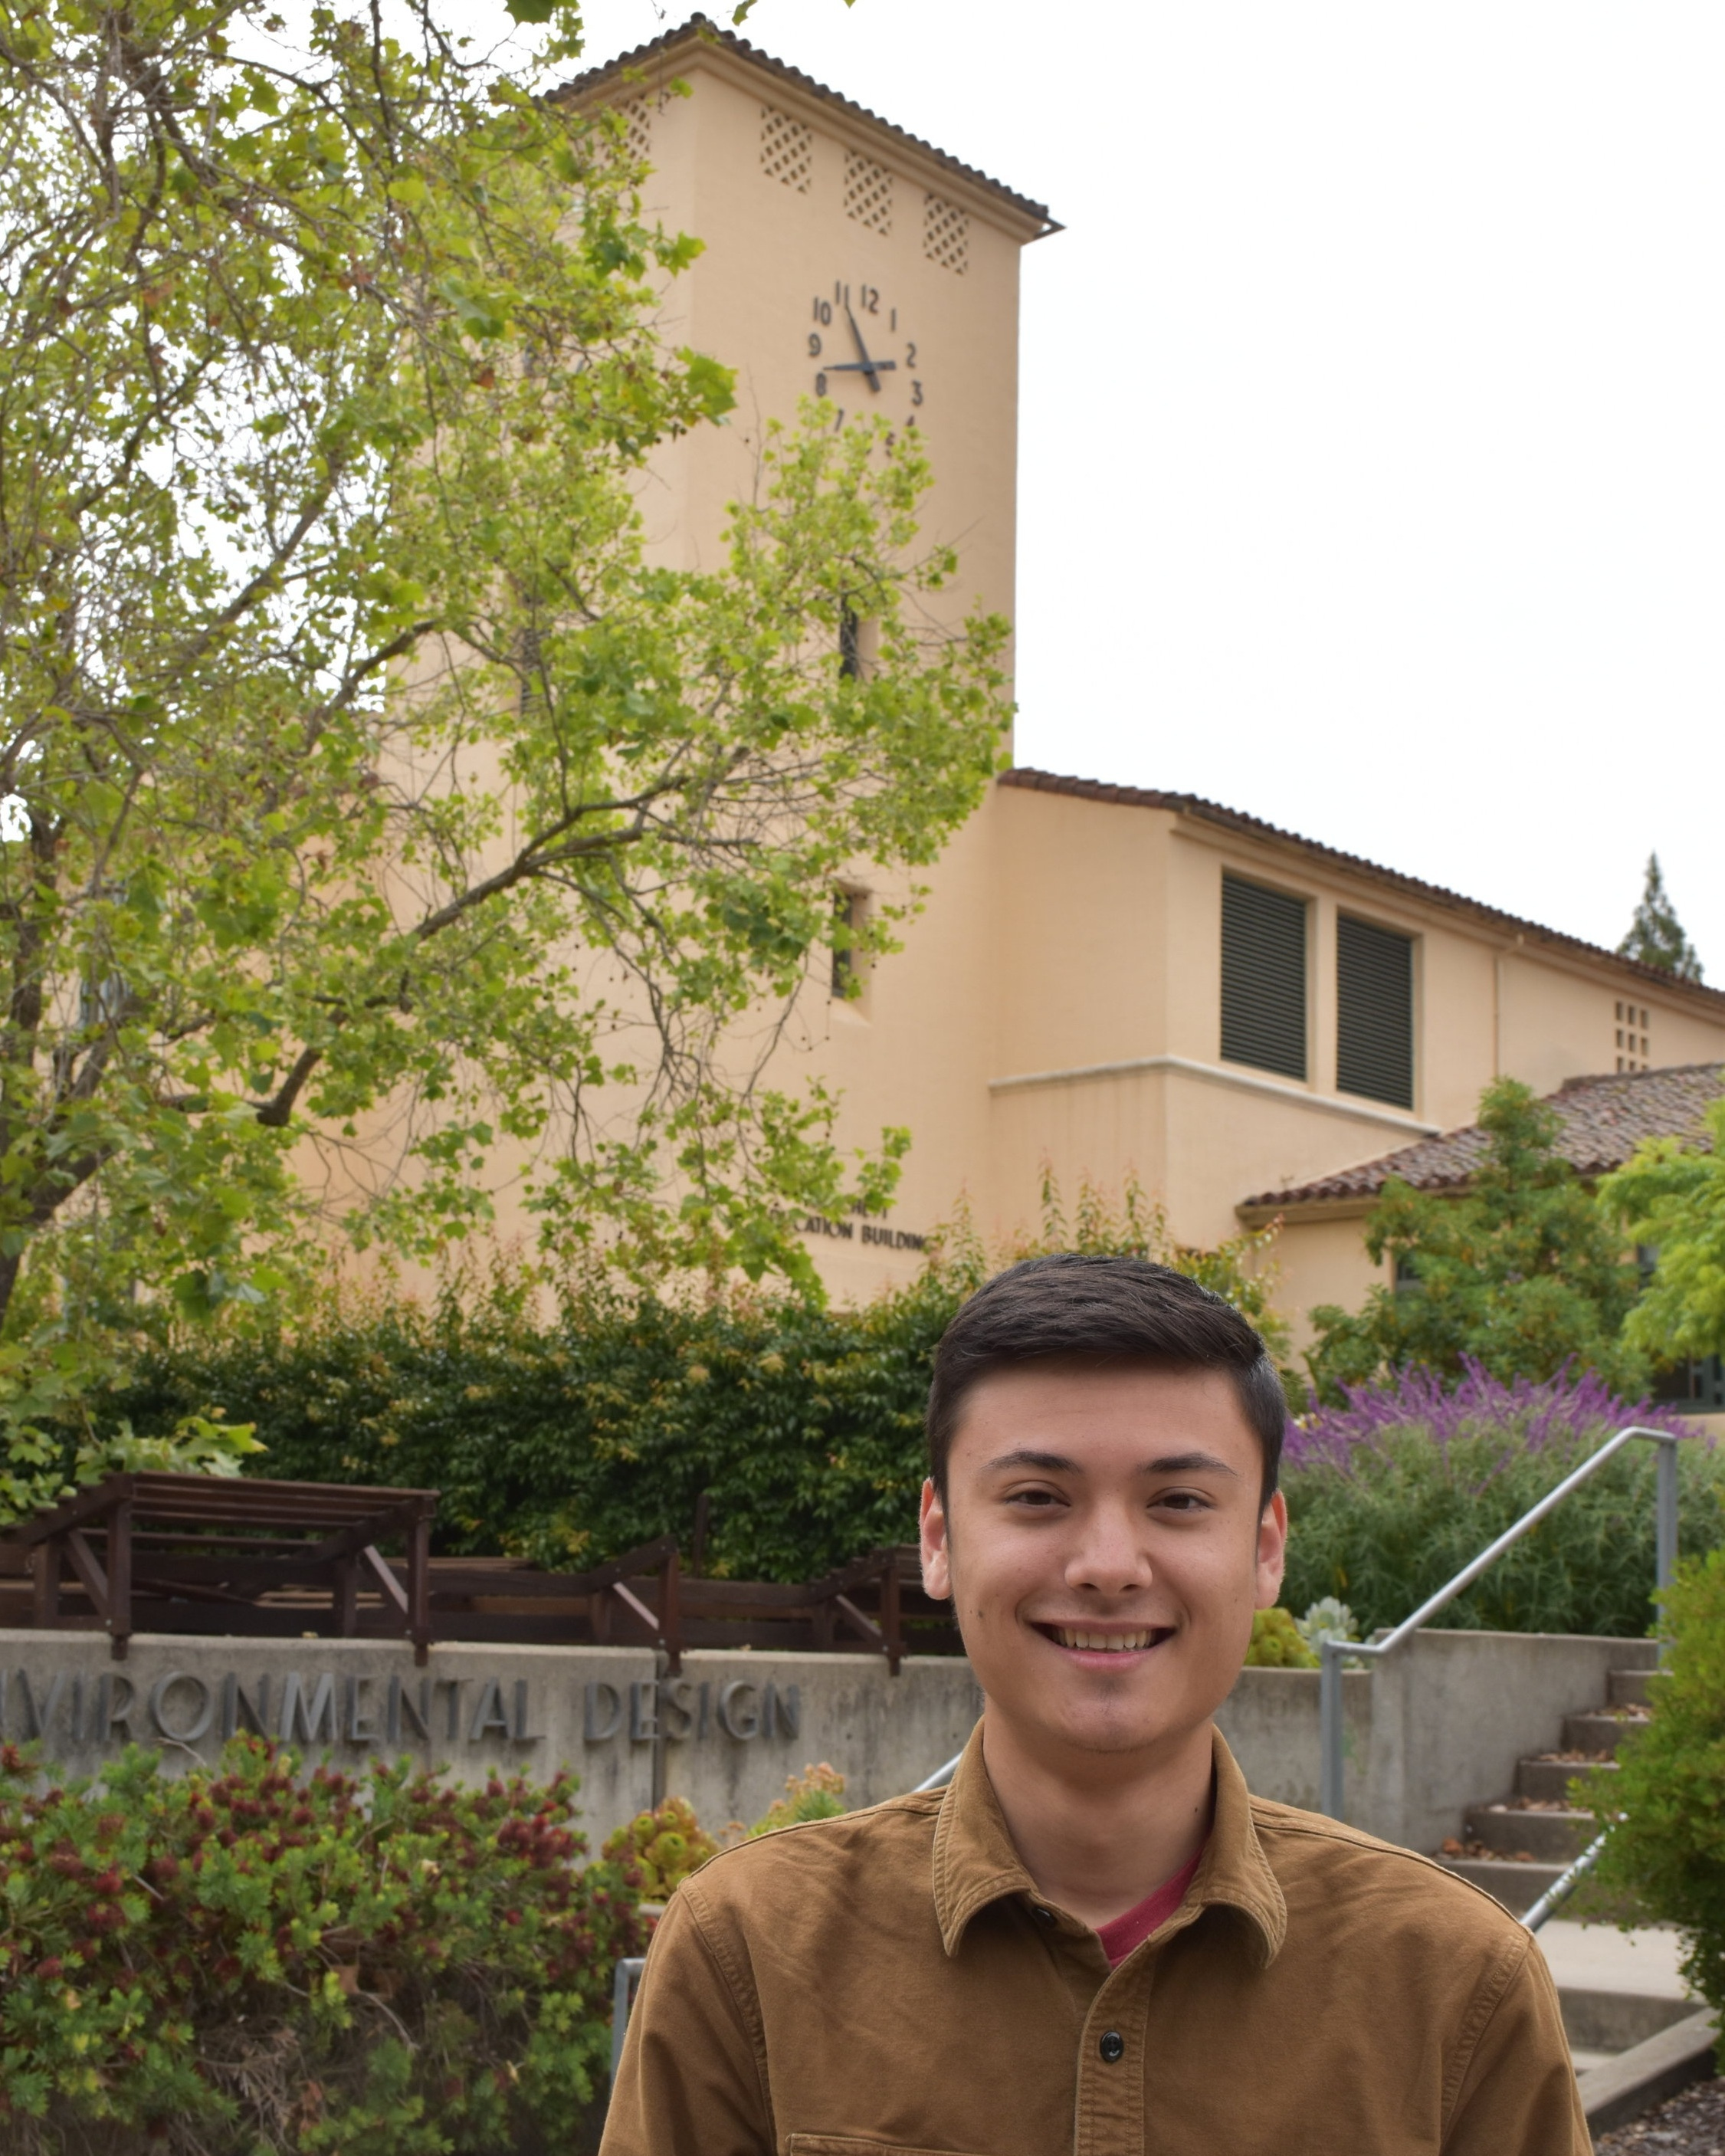 Brendan Norton  President - Brendan Norton is the President of ASP for the 2019-2020 school year. He wanted to join ASP after learning about all the resources and connections it offered. Brendan is from Stockton, CA, and thinks planners can change the world.